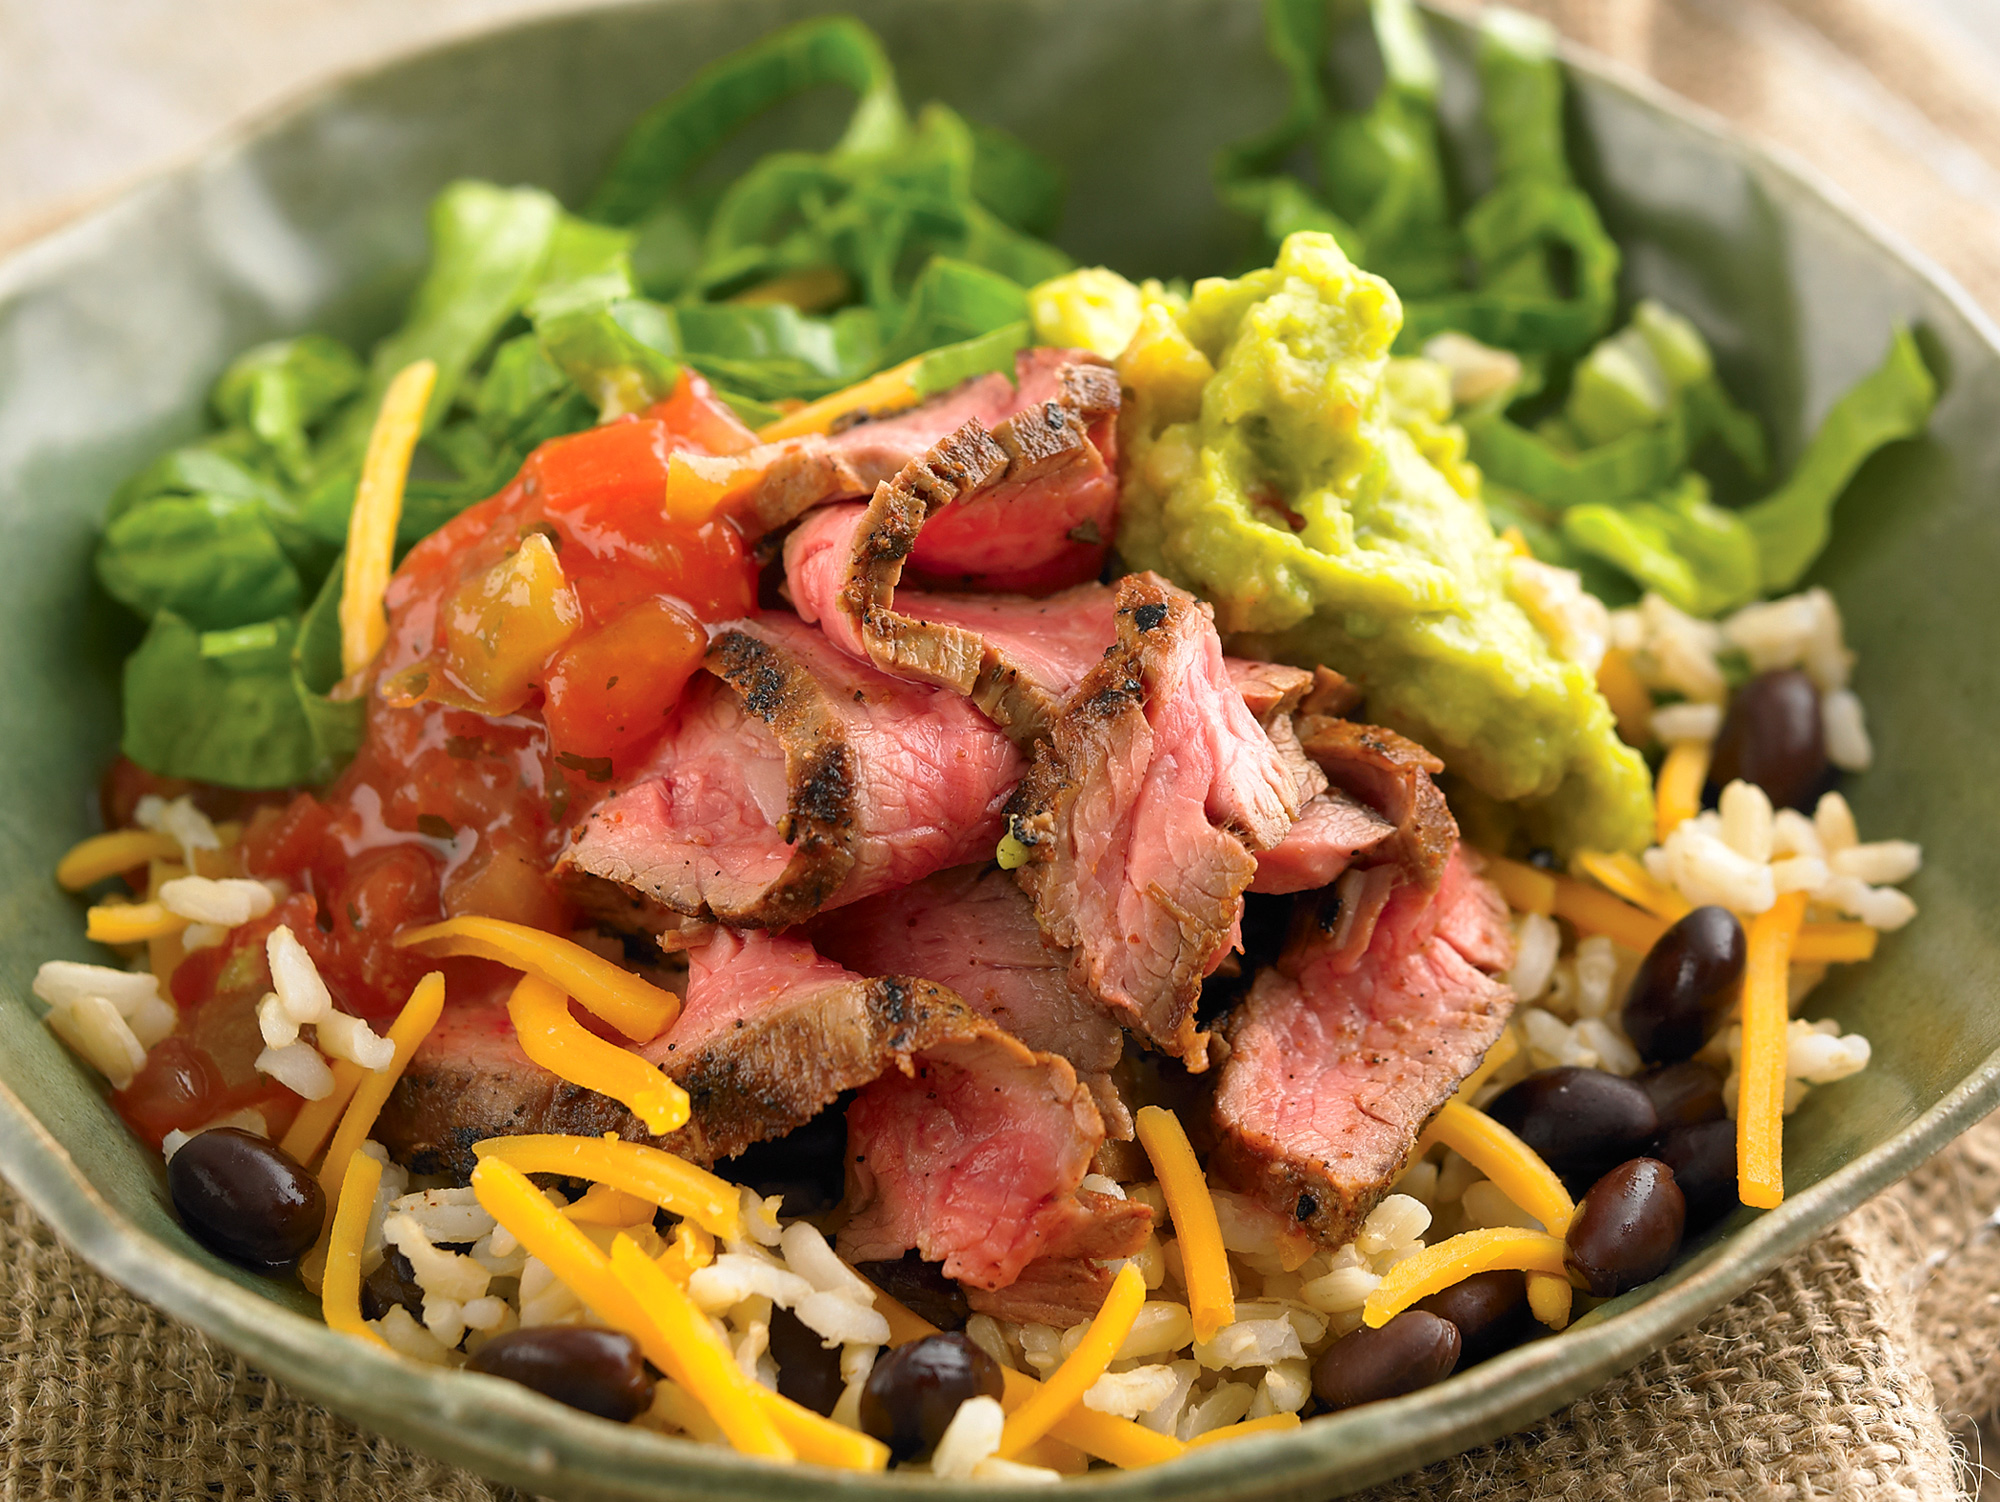 Diabetic-friendly steak burrito bowl is yummy enough for the whole family to enjoy.